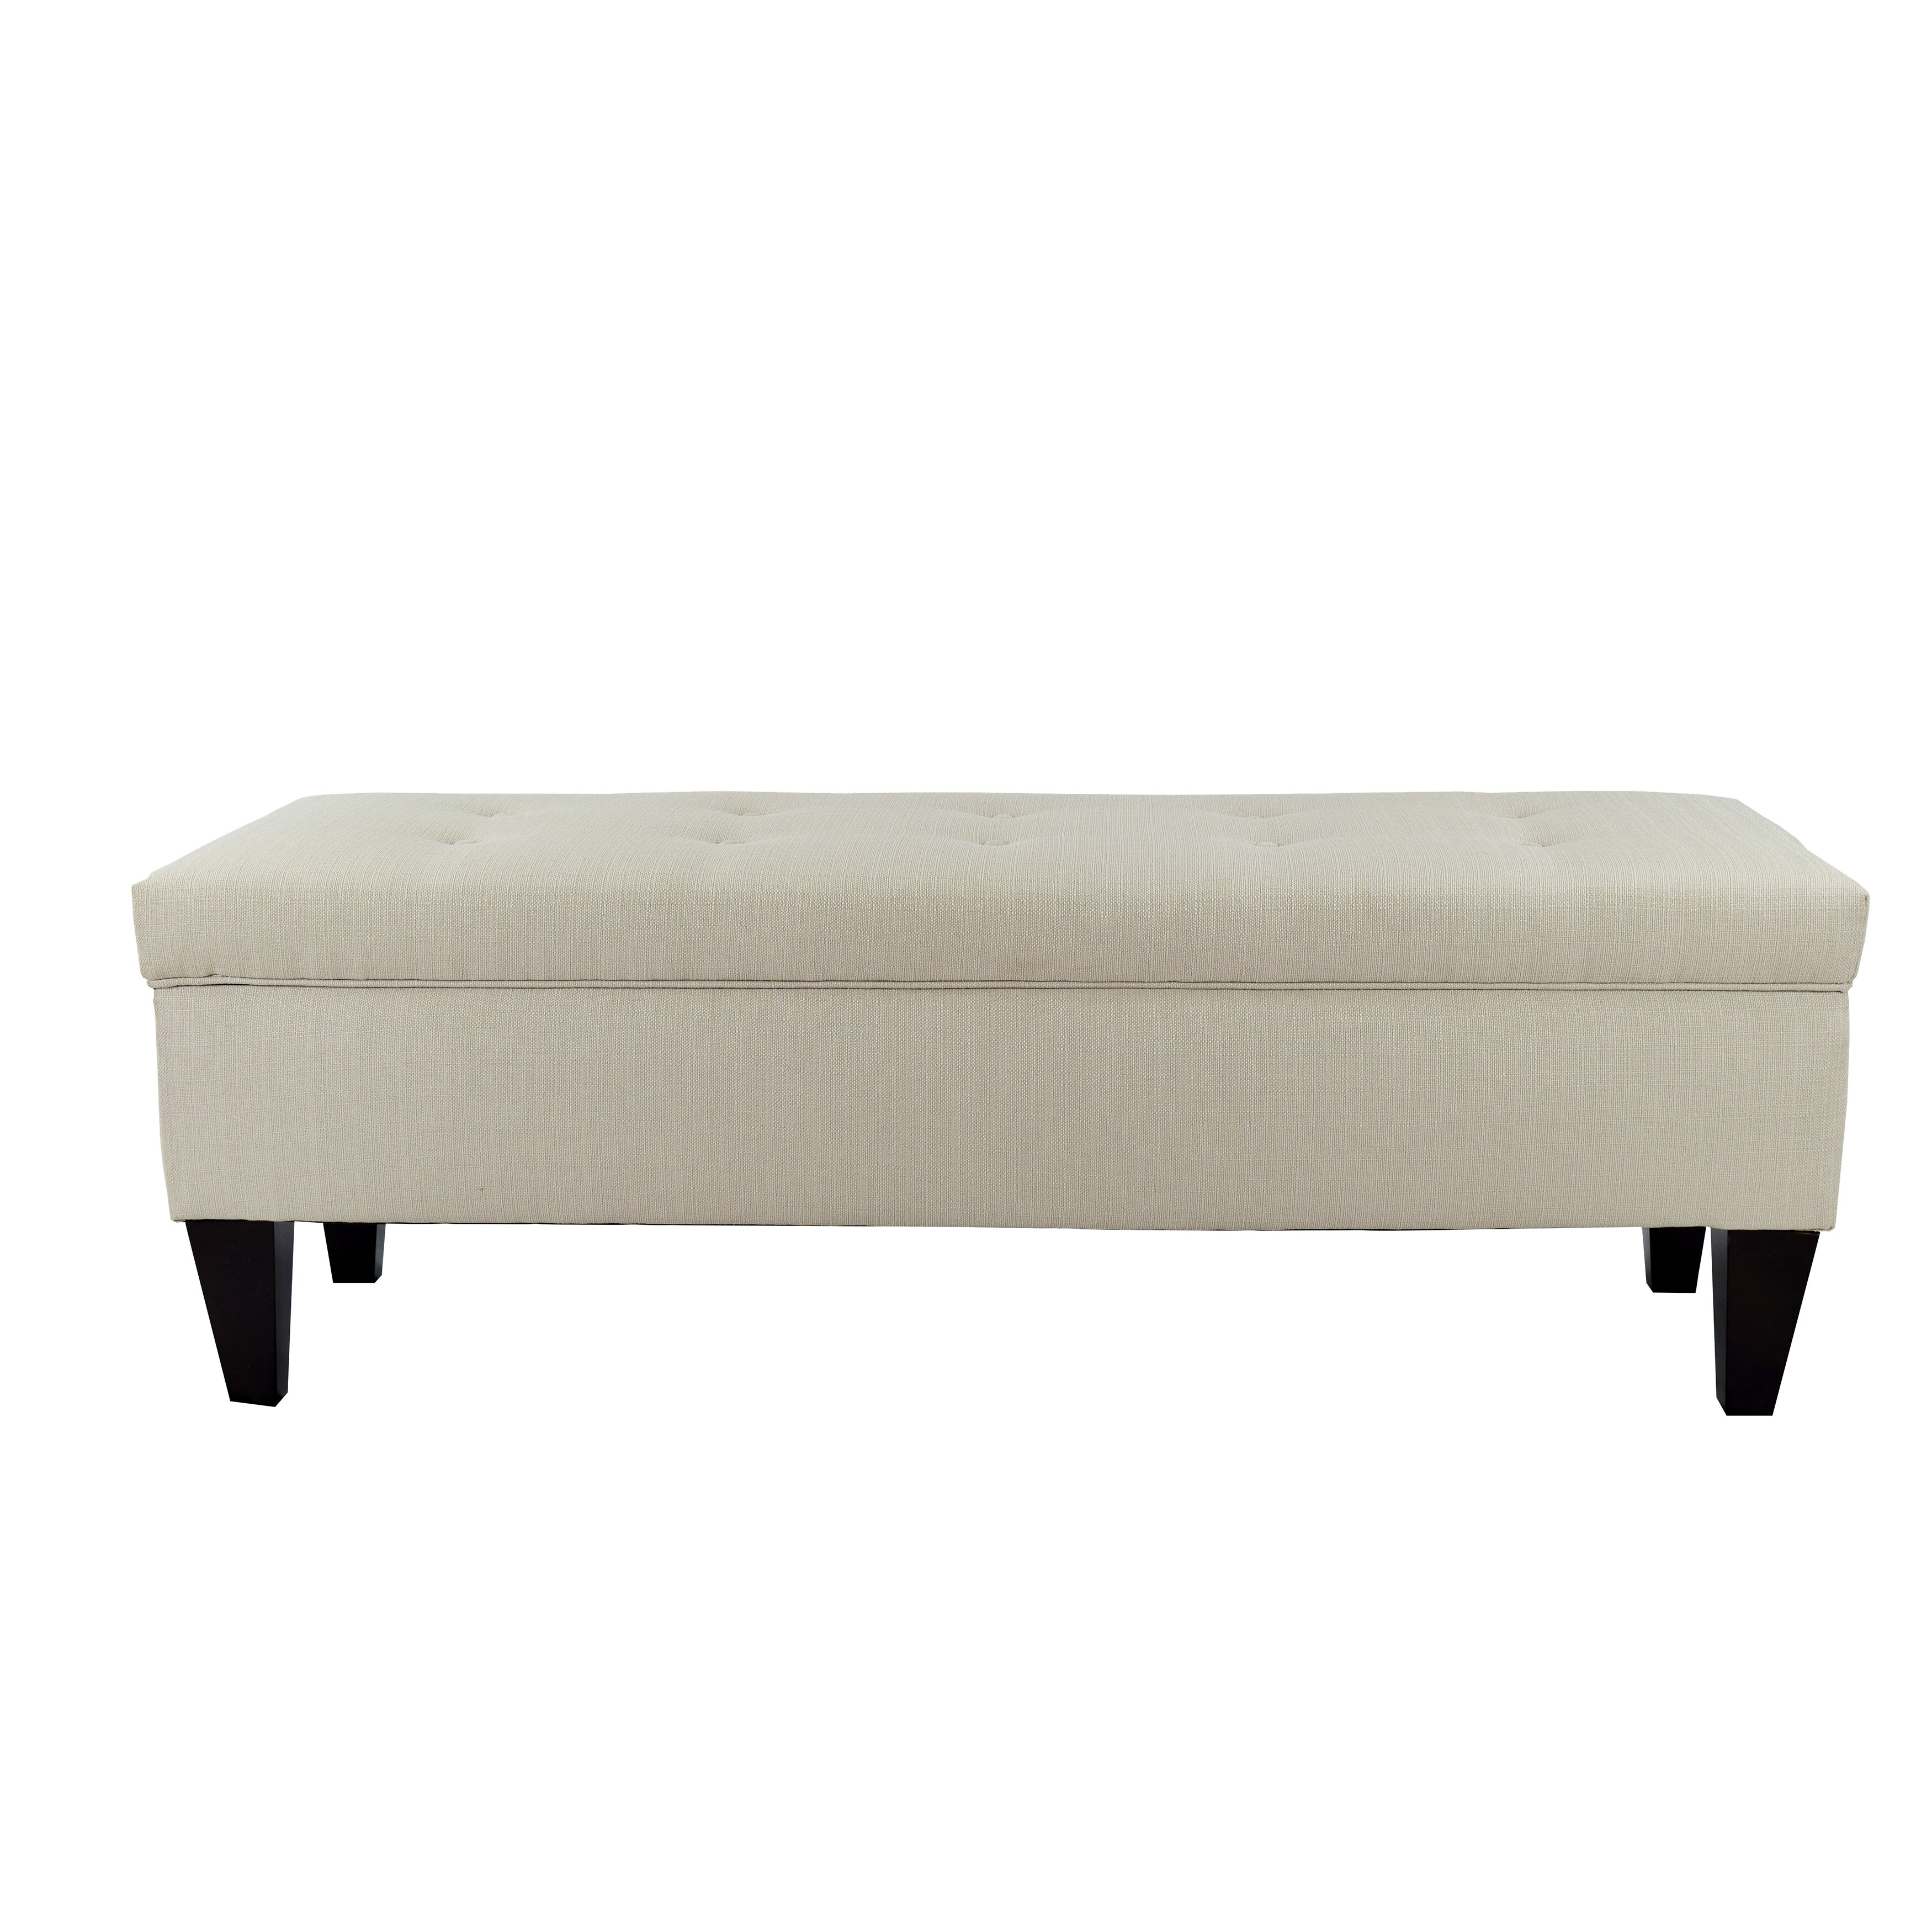 Mjlfurniture Sachi Upholstered Storage Bench Reviews Wayfair